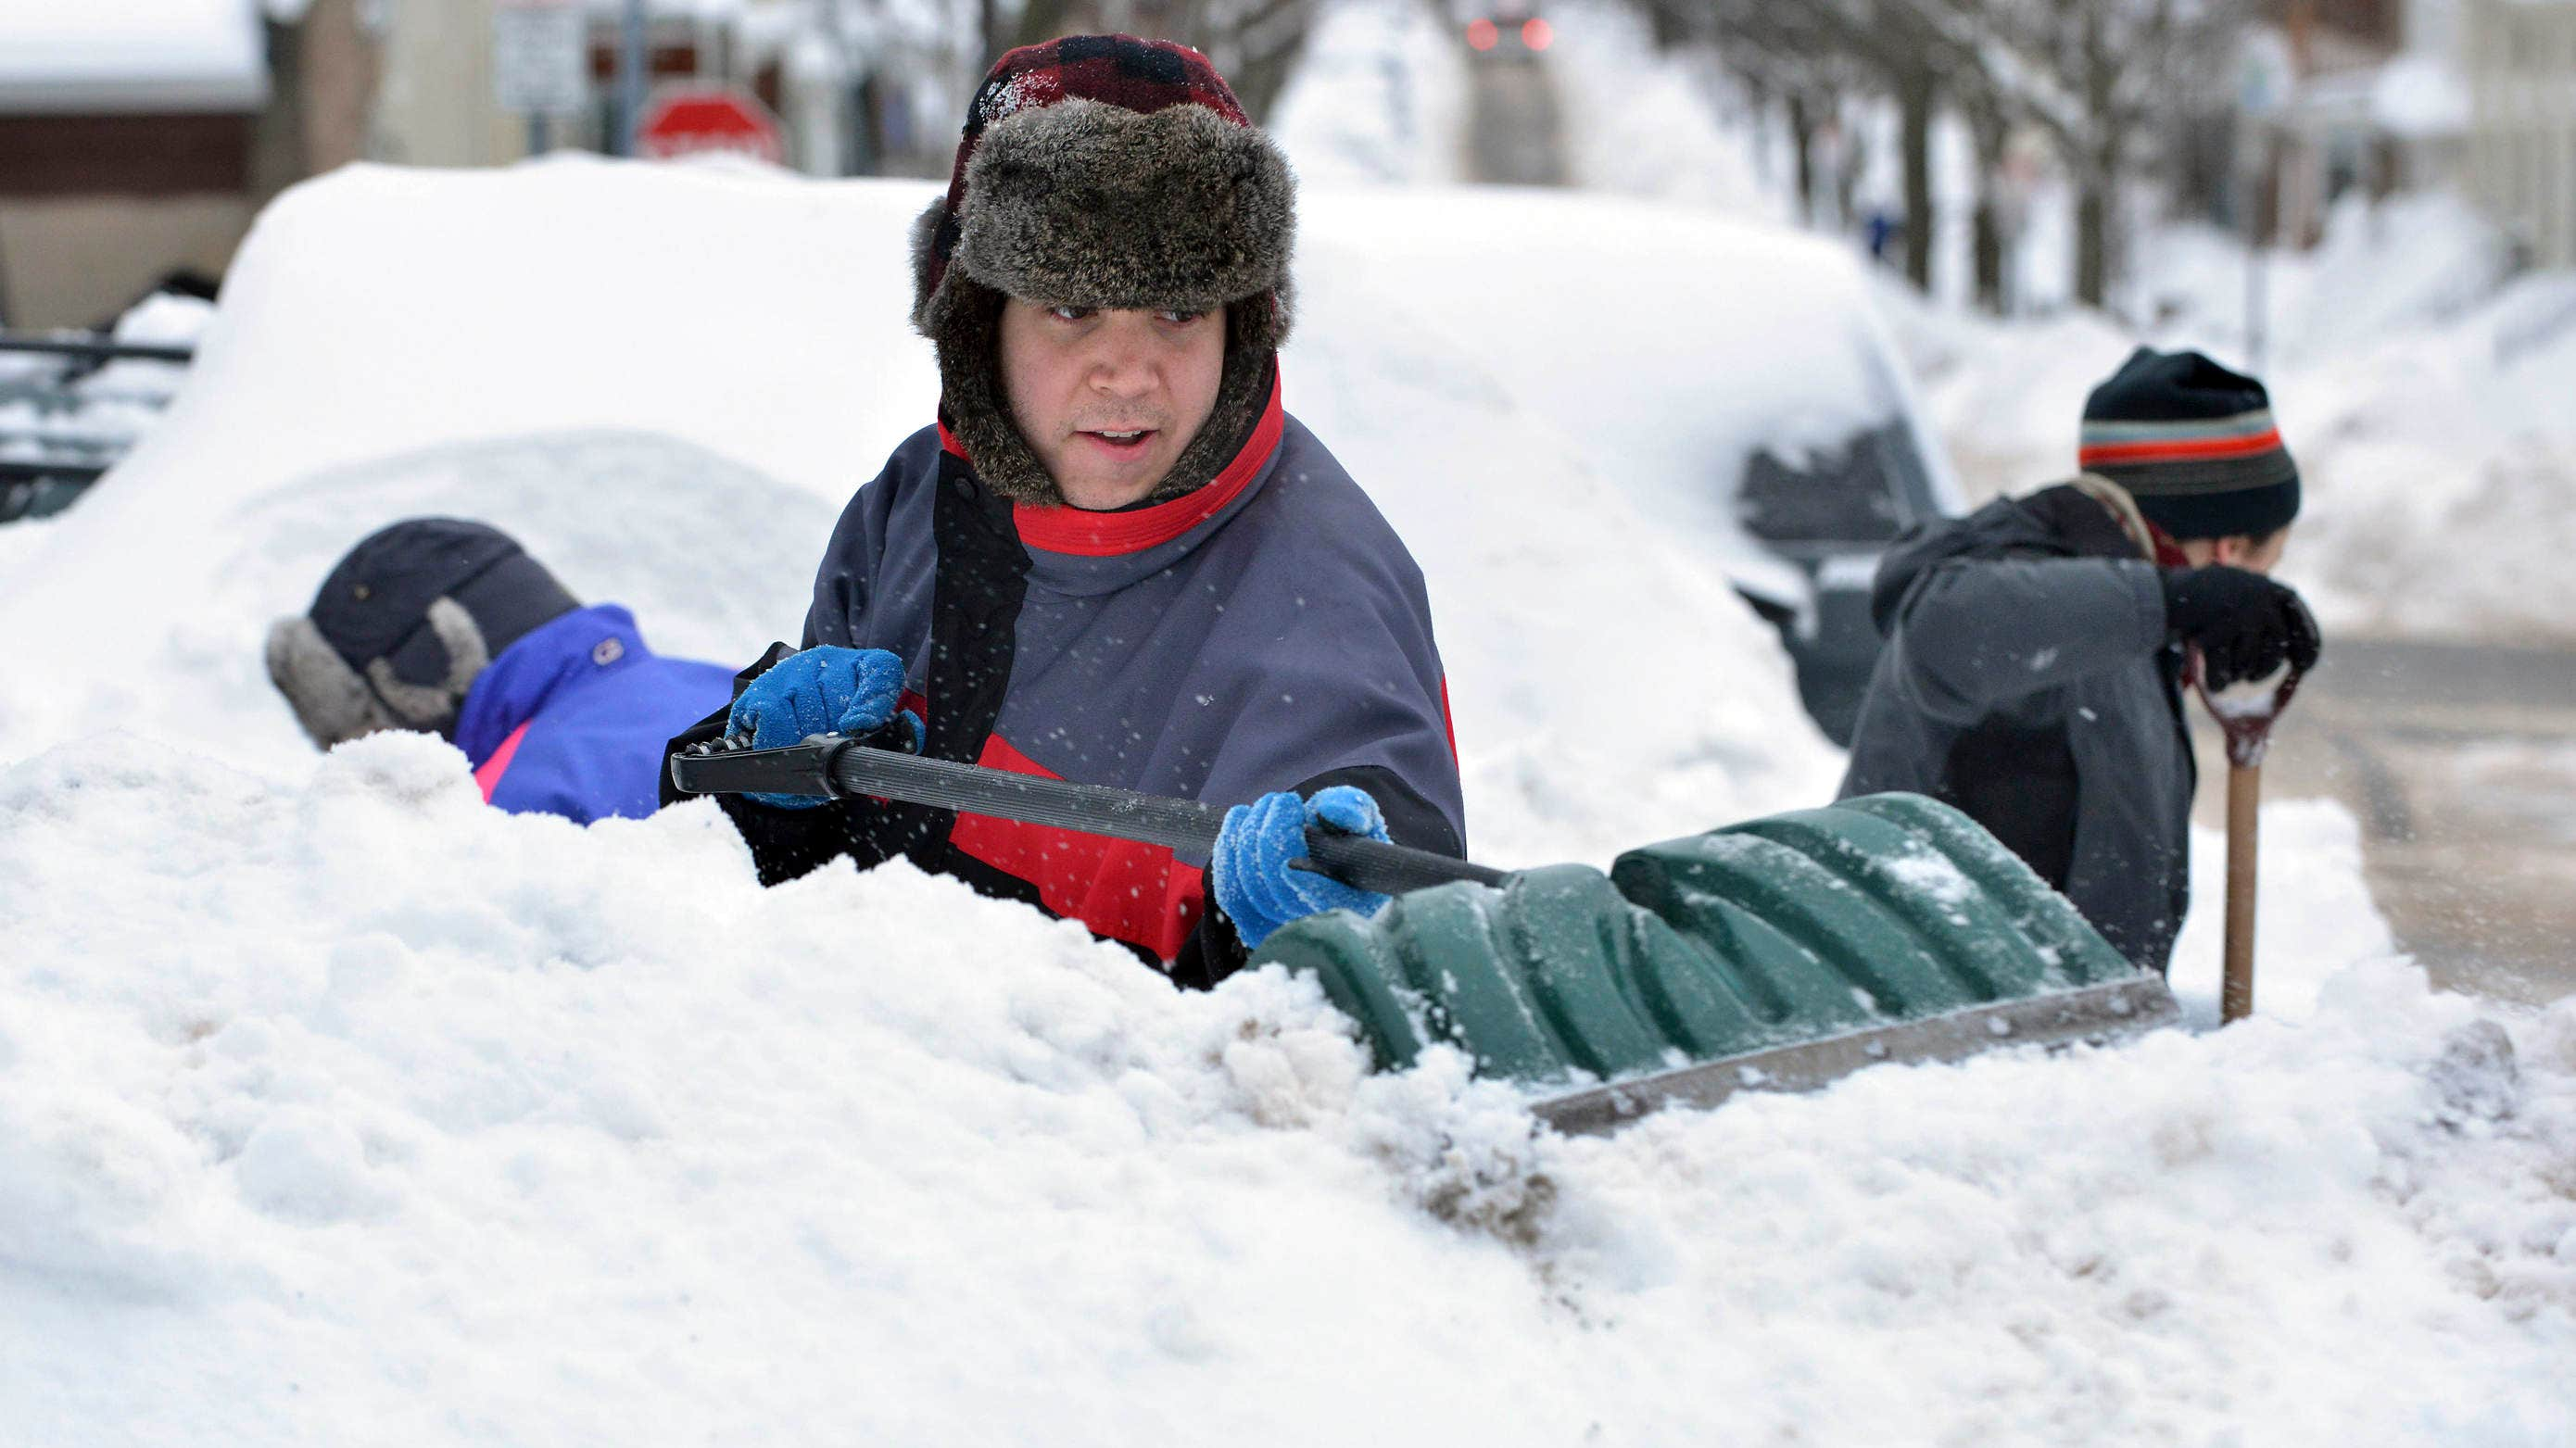 Blistering cold, more snow expected to wallop Boston